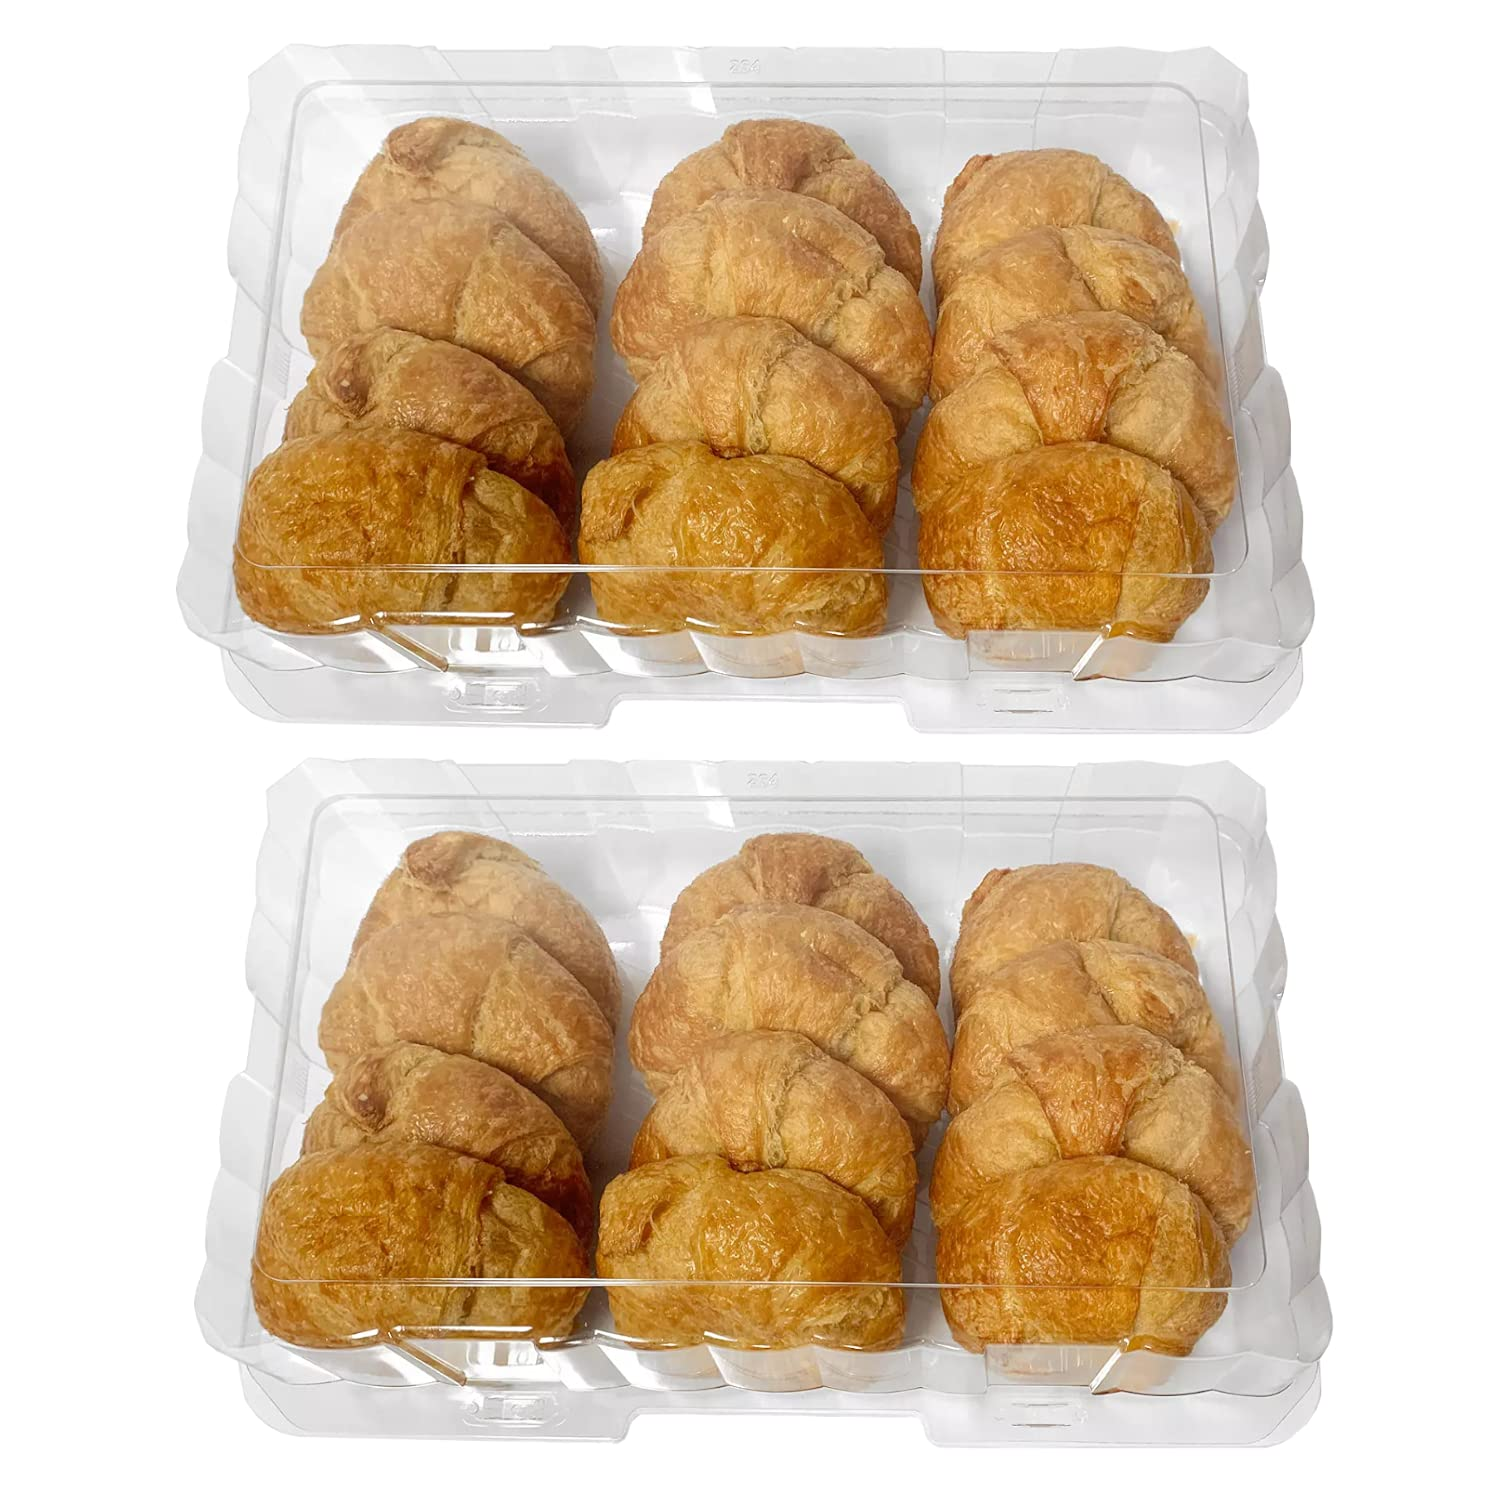 Member's Mark Store All Butter Sandwich layers Multiple Croissants New product! New type of